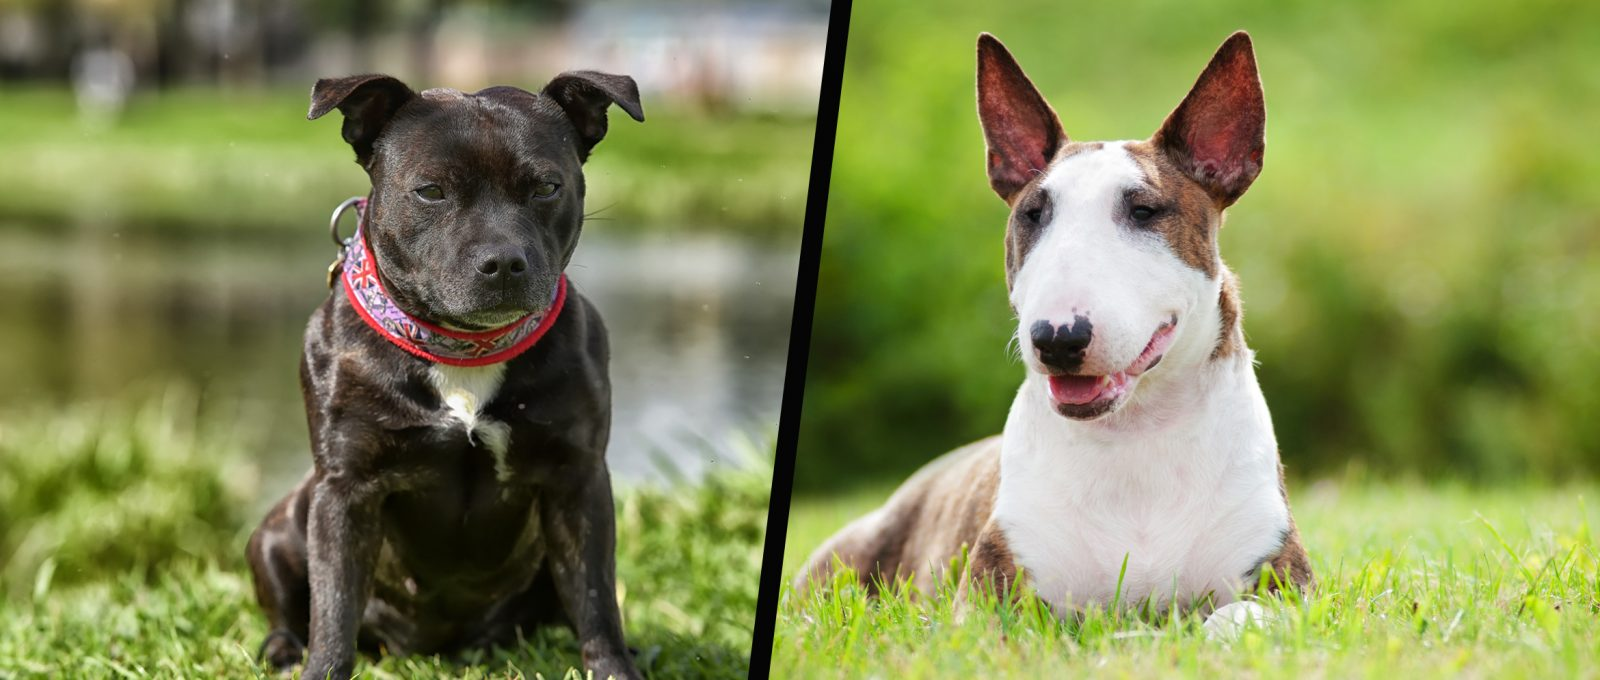 Staffordshire Bull terrier and English Bull Terrier